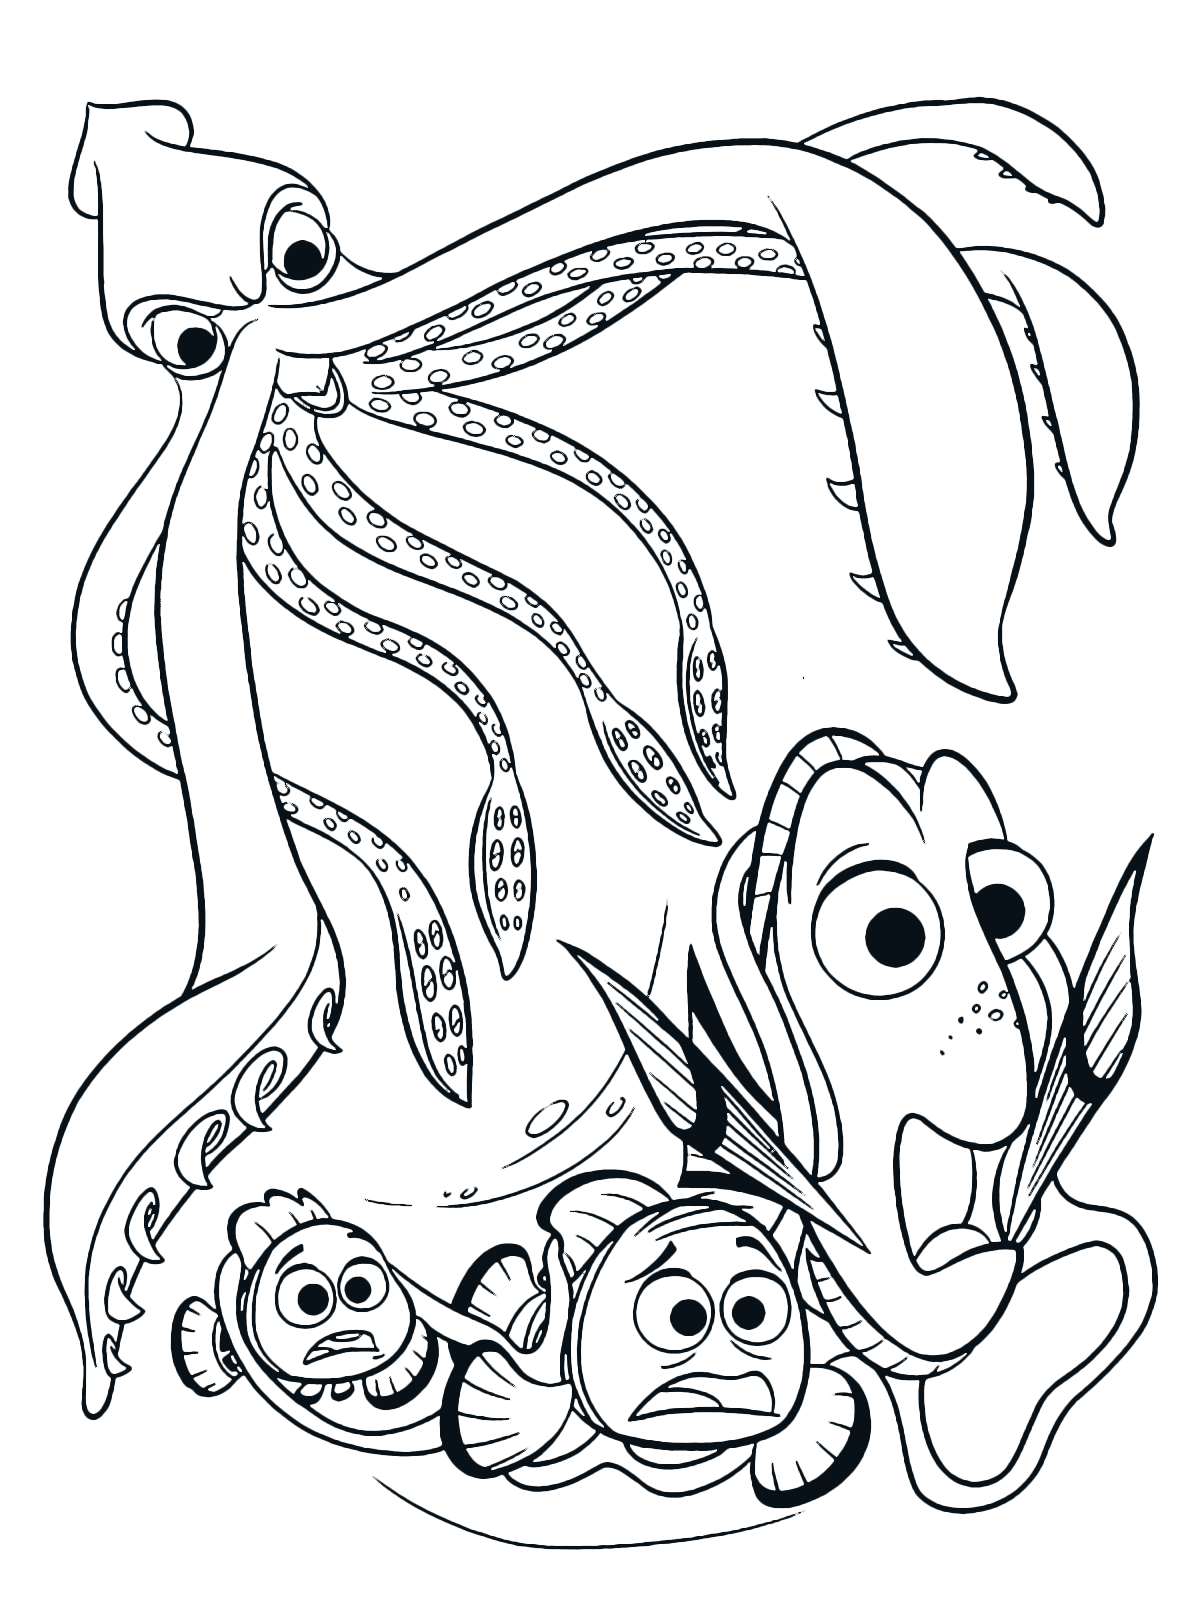 Finding Dory Coloring Page Dory Marlin And Nemo Are Attacked By A Giant Squid Animal Coloring Pages Nemo Coloring Pages Coloring Pictures Coloring Home